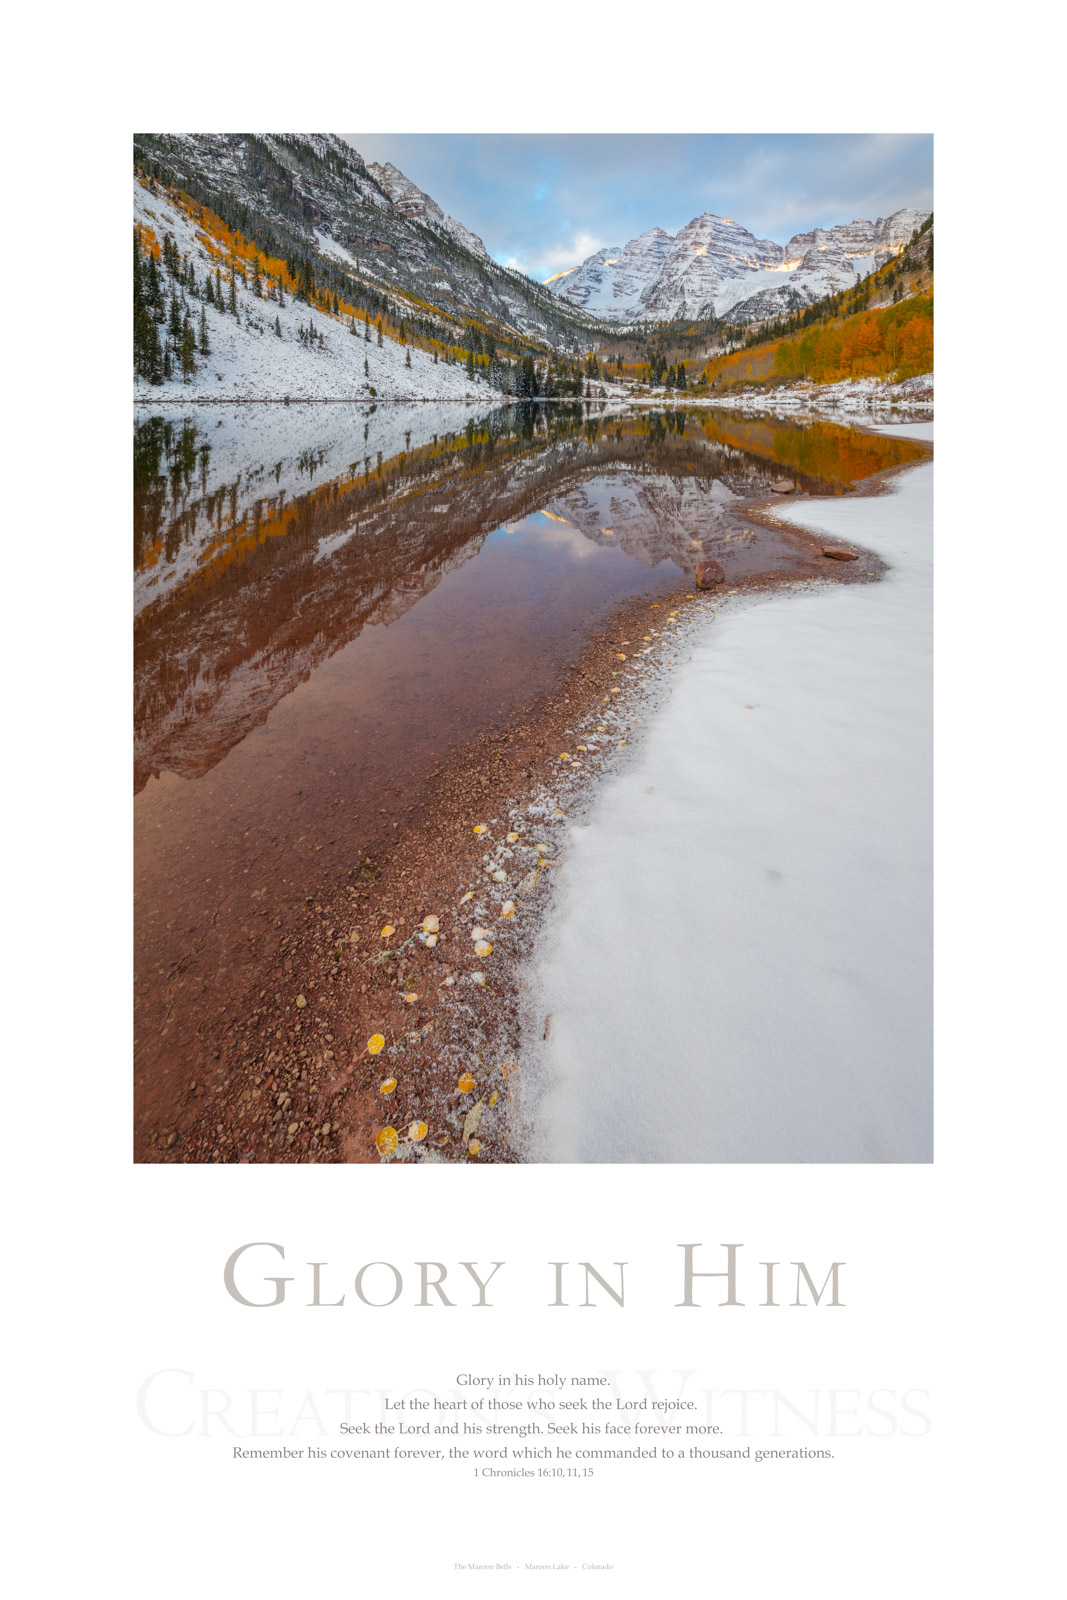 Glory in his holy name. Let the heart of those who seek the Lord rejoice. Seek the Lord and his strength. Seek his face forever...